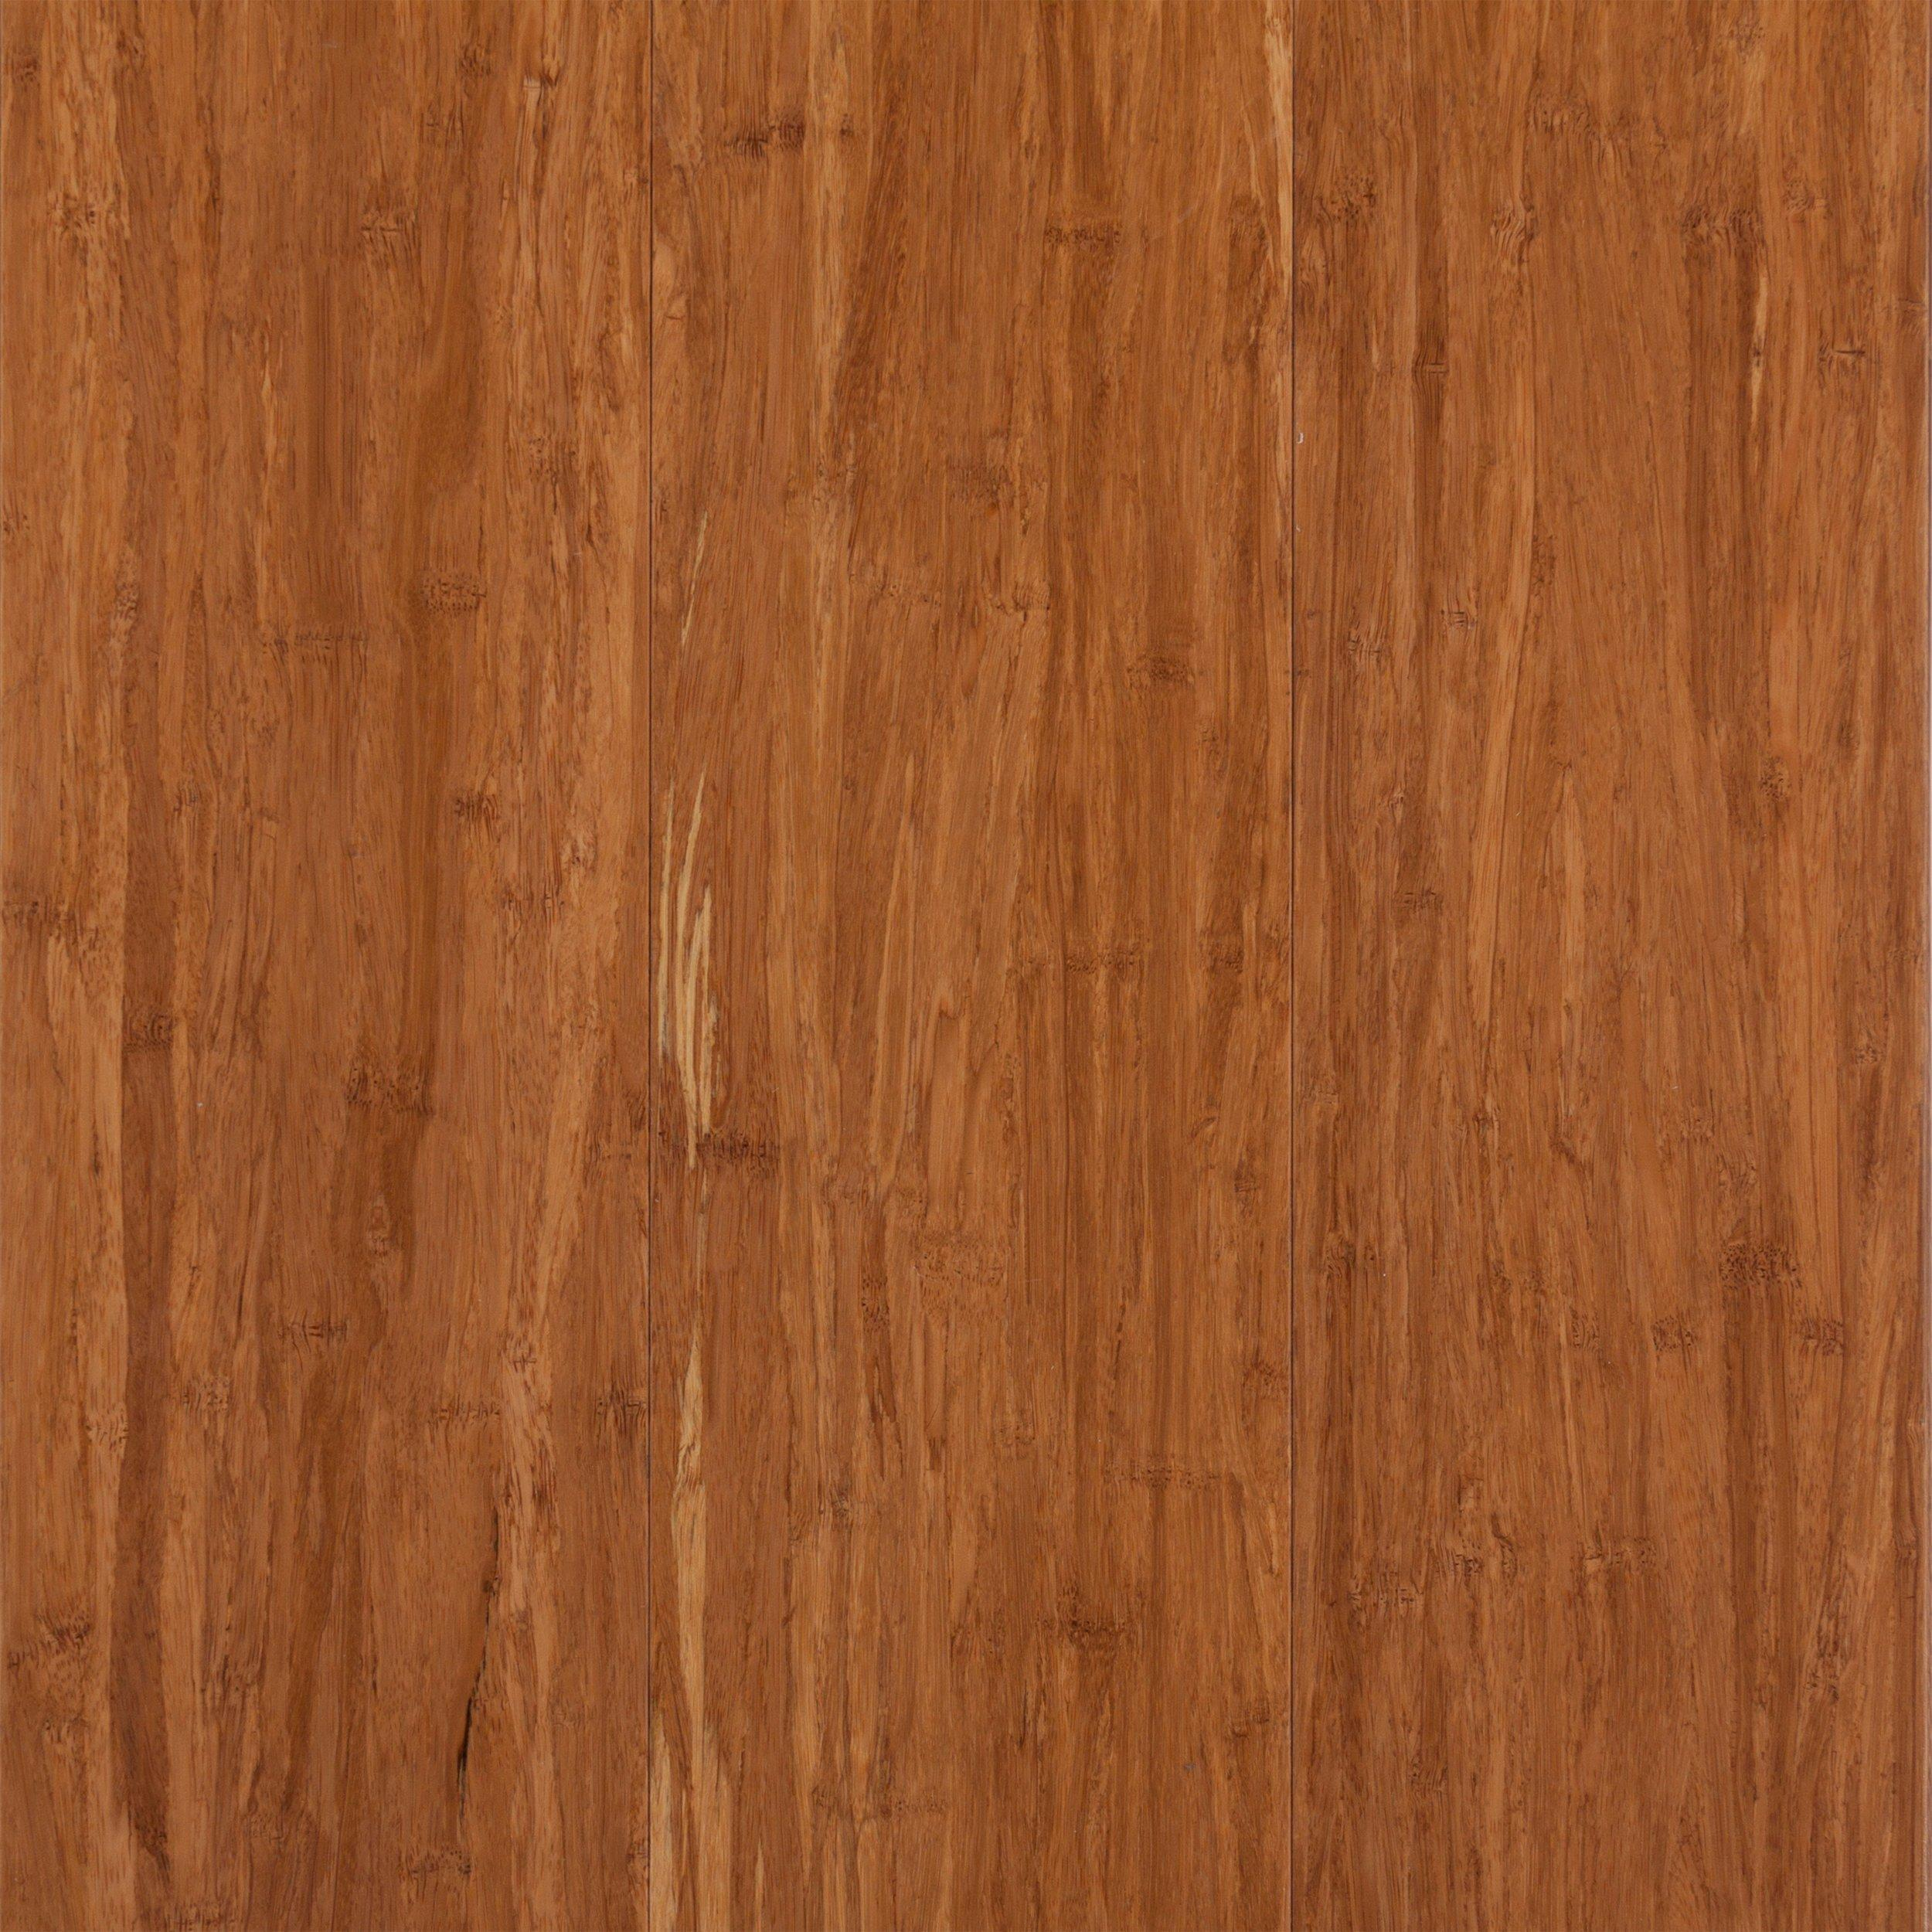 Eco flooring elegant green mountain eco floors keep for Eco bamboo flooring